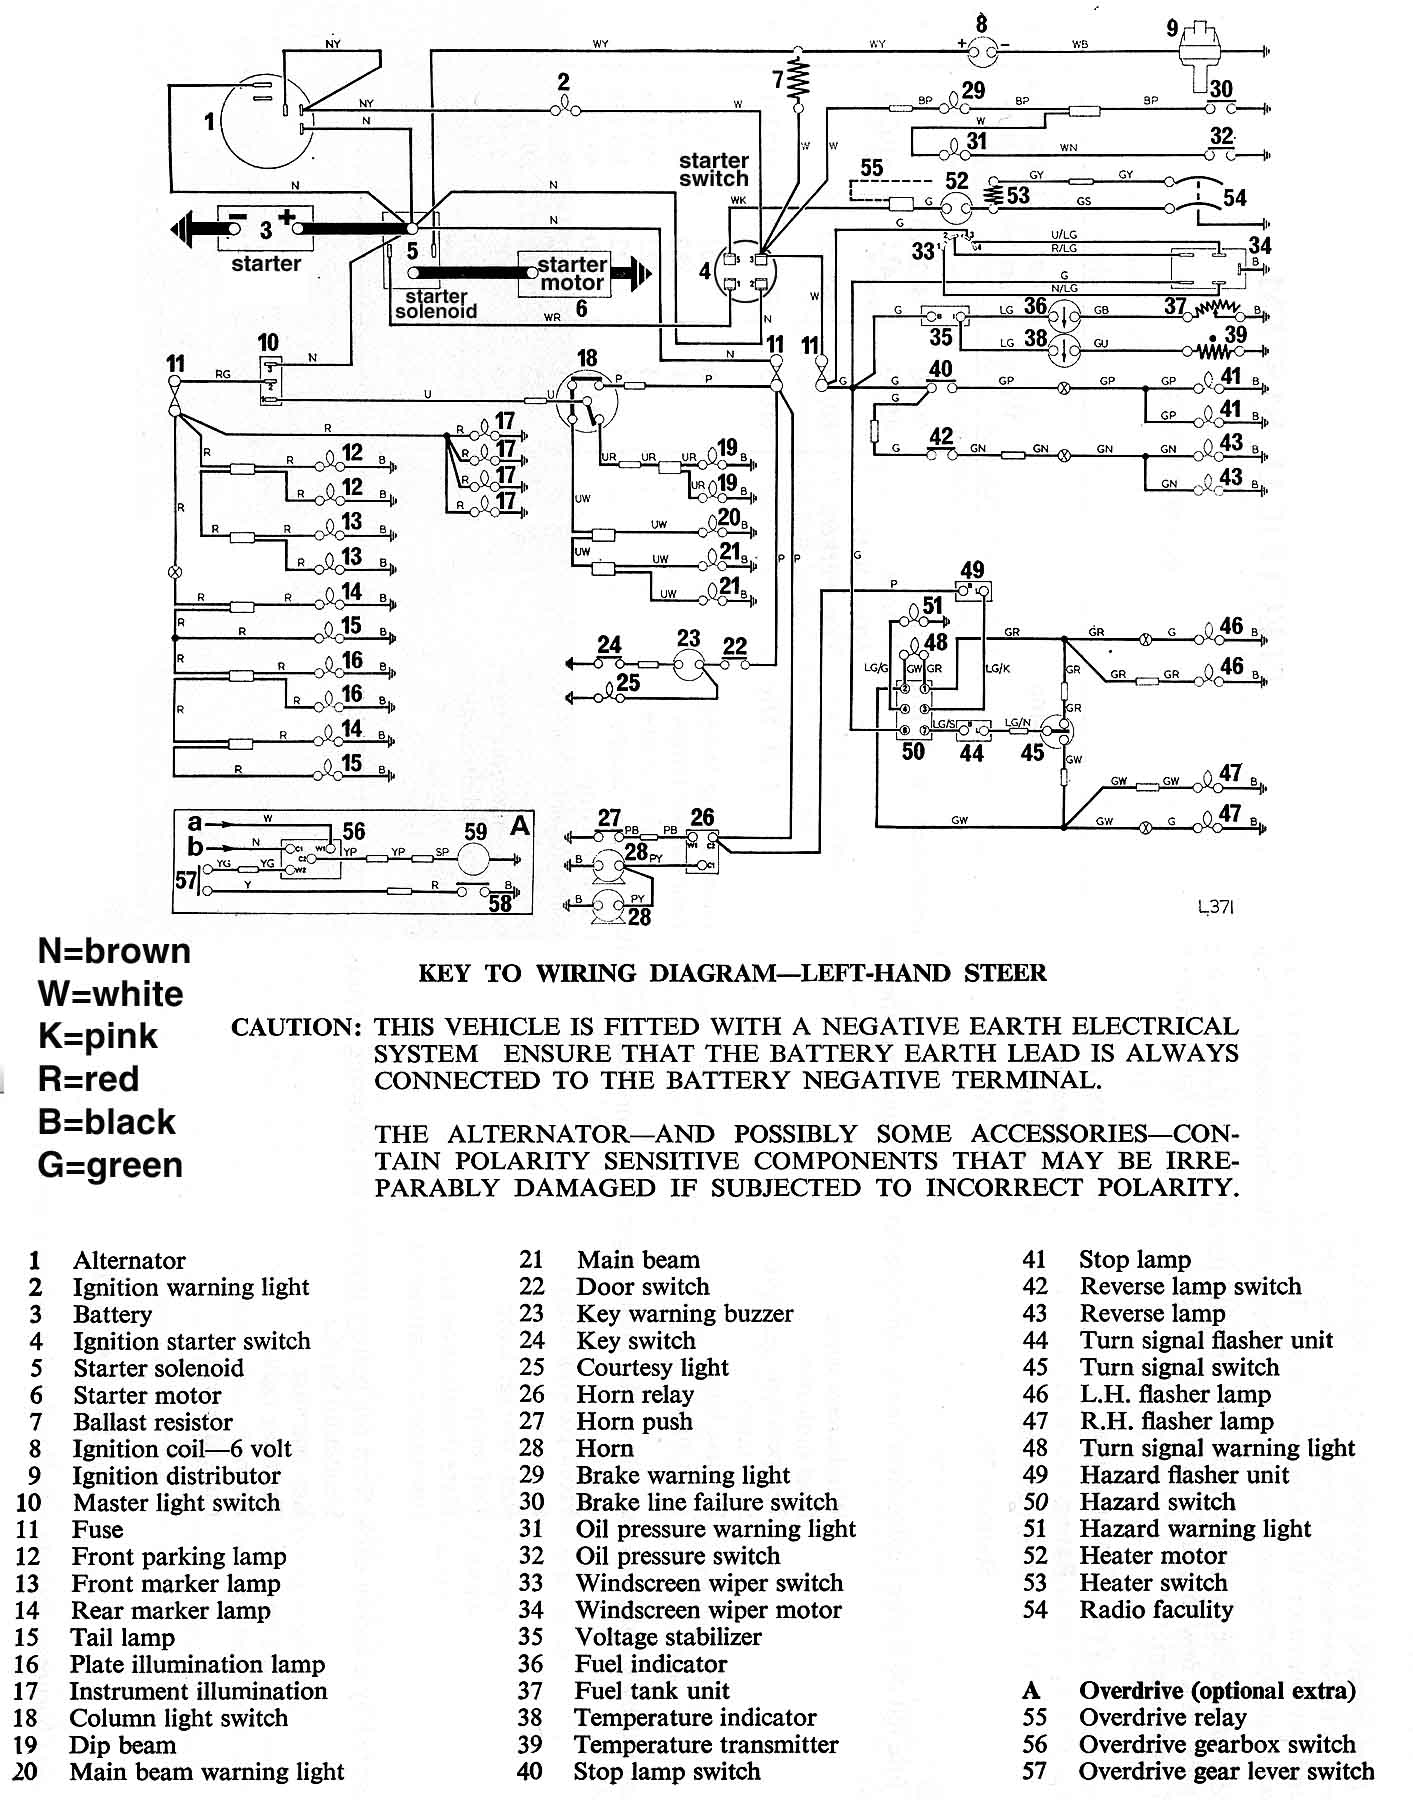 tr6 wiring diagram with Beginnings Of Datsun Name From on Beginnings Of Datsun Name From further Ncc 1701 E Star Trek Ships Pinterest besides Triumph Spitfire 1500 Wiring Diagram Uk besides Auto Electric Fan Wiring Diagram besides Chilton Manual Wiring Diagram.